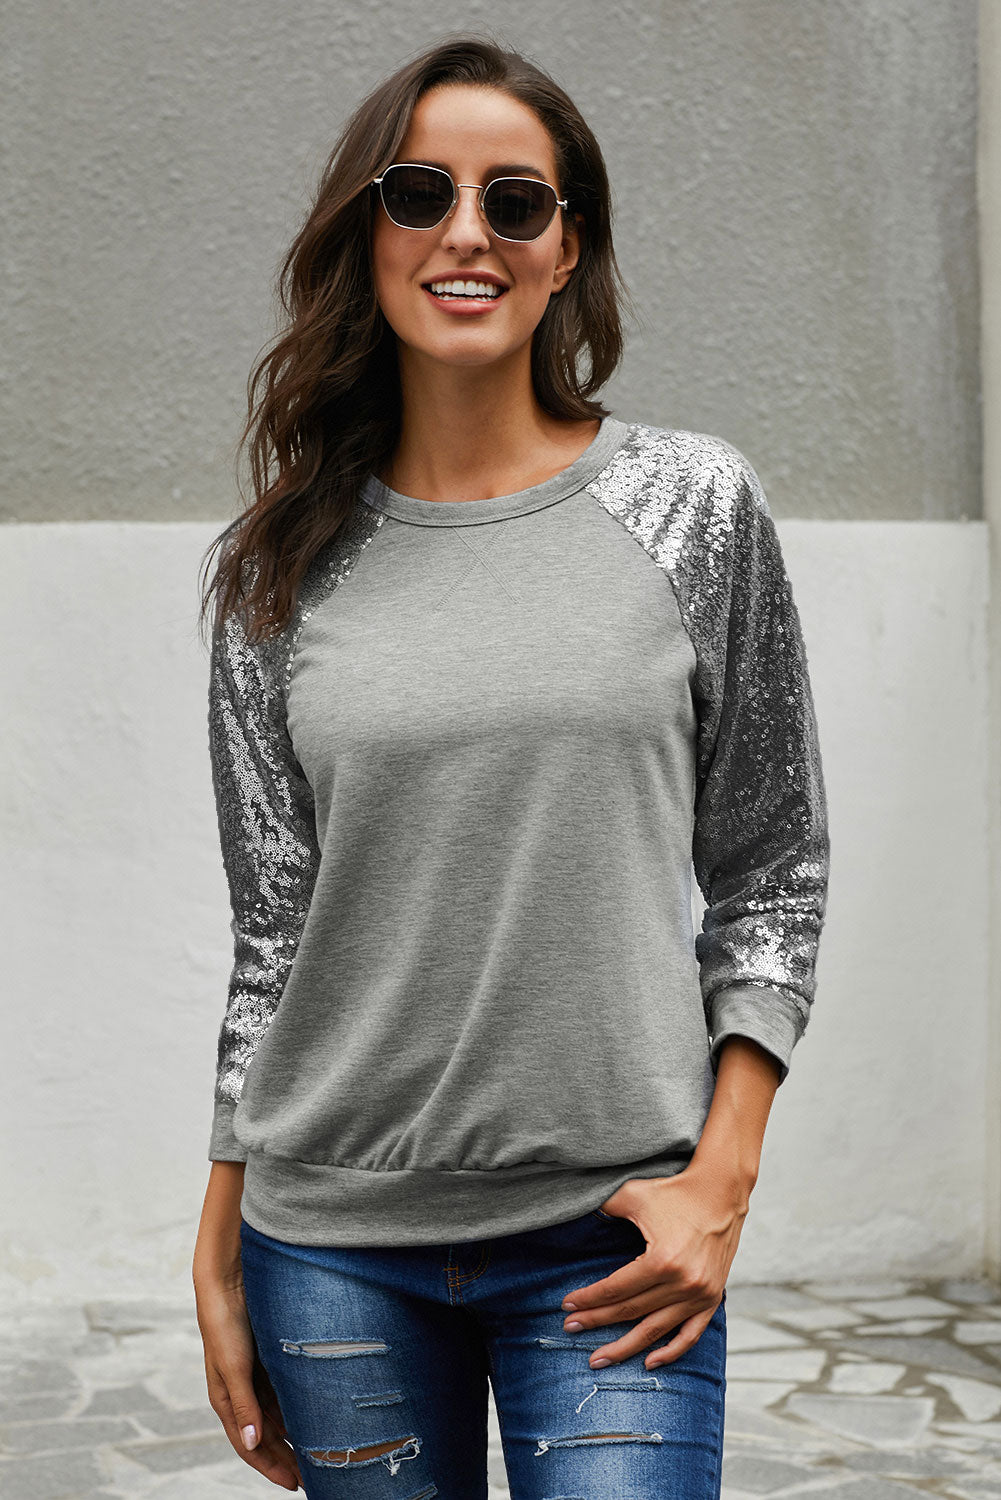 Gotta Have It Sequin Knit Top